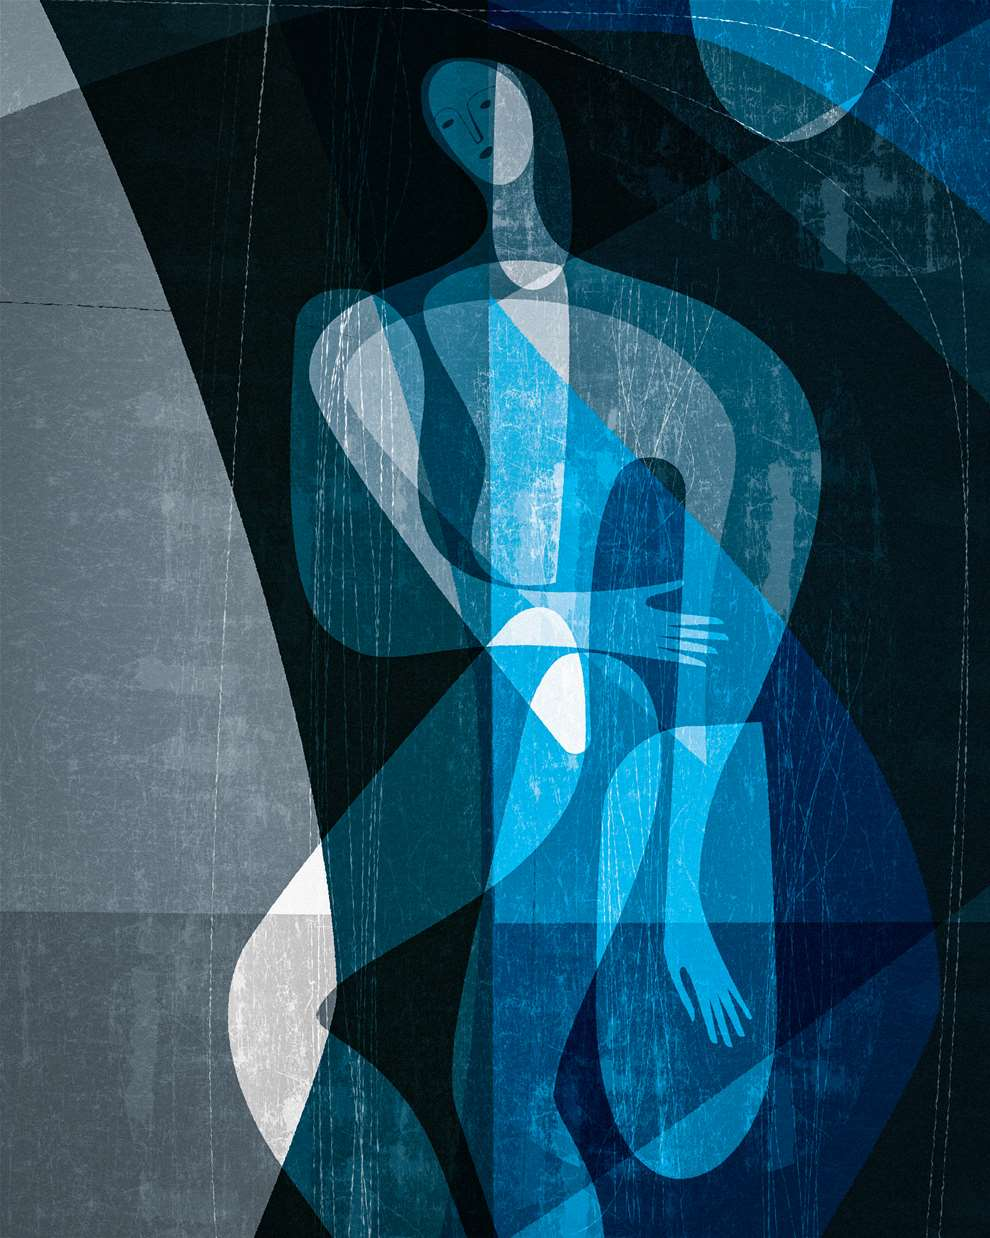 Paul Wearing, Digital textural illustration of a naked figurative body in blue water.